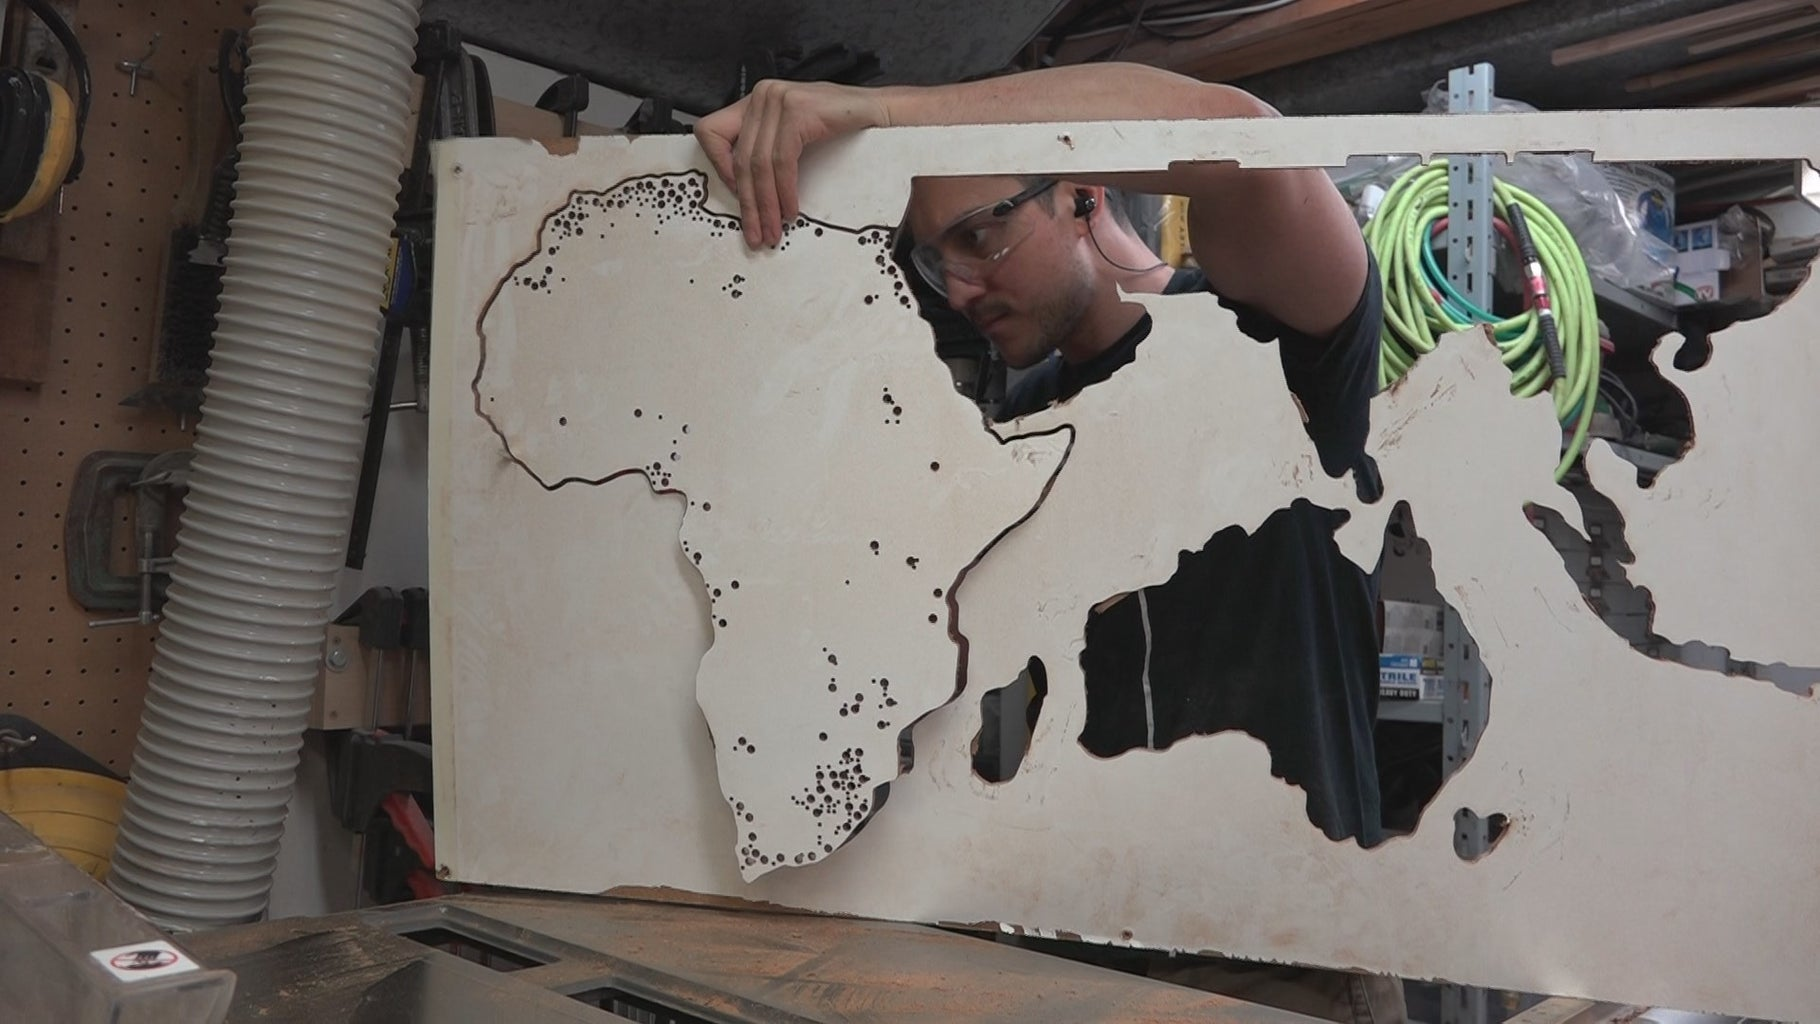 Cutting Out the Map (CNC Cutting)